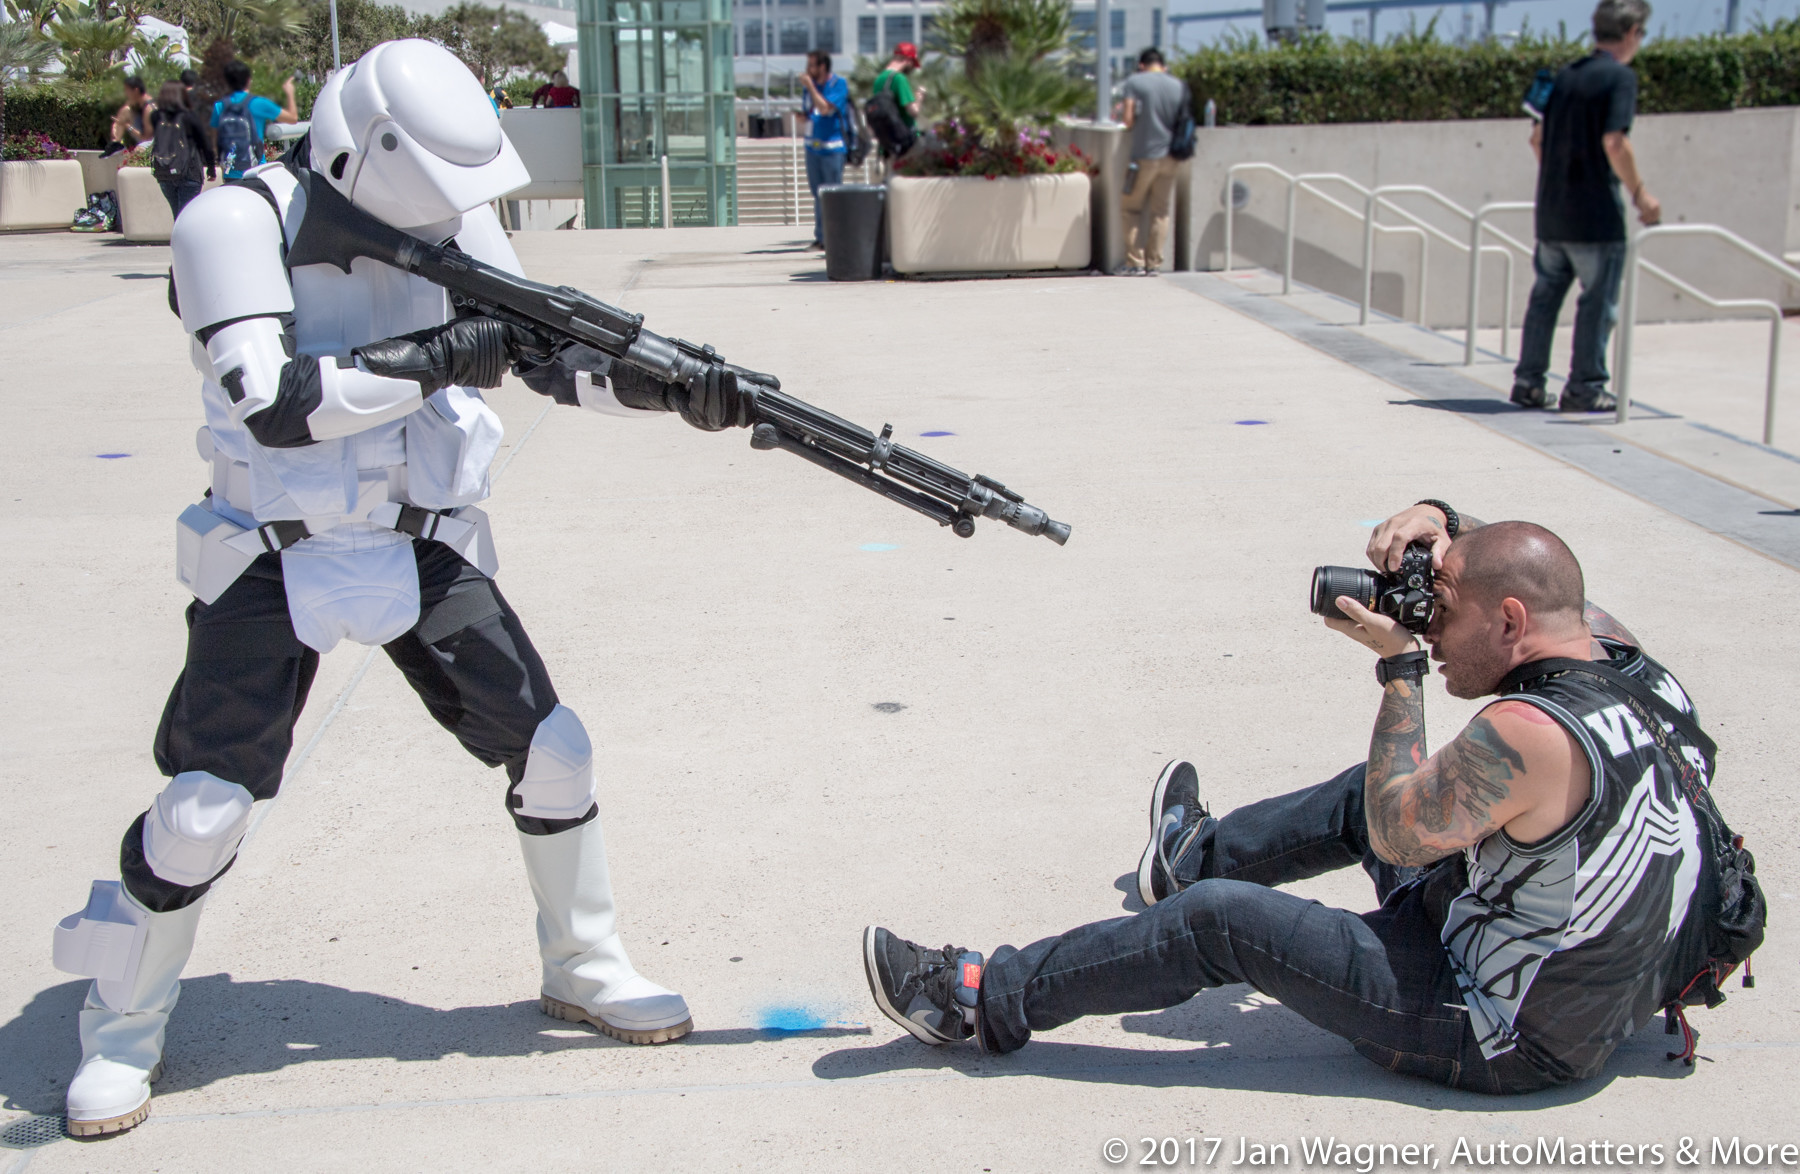 Shooting the shooter – San Diego Comic-Con 2016